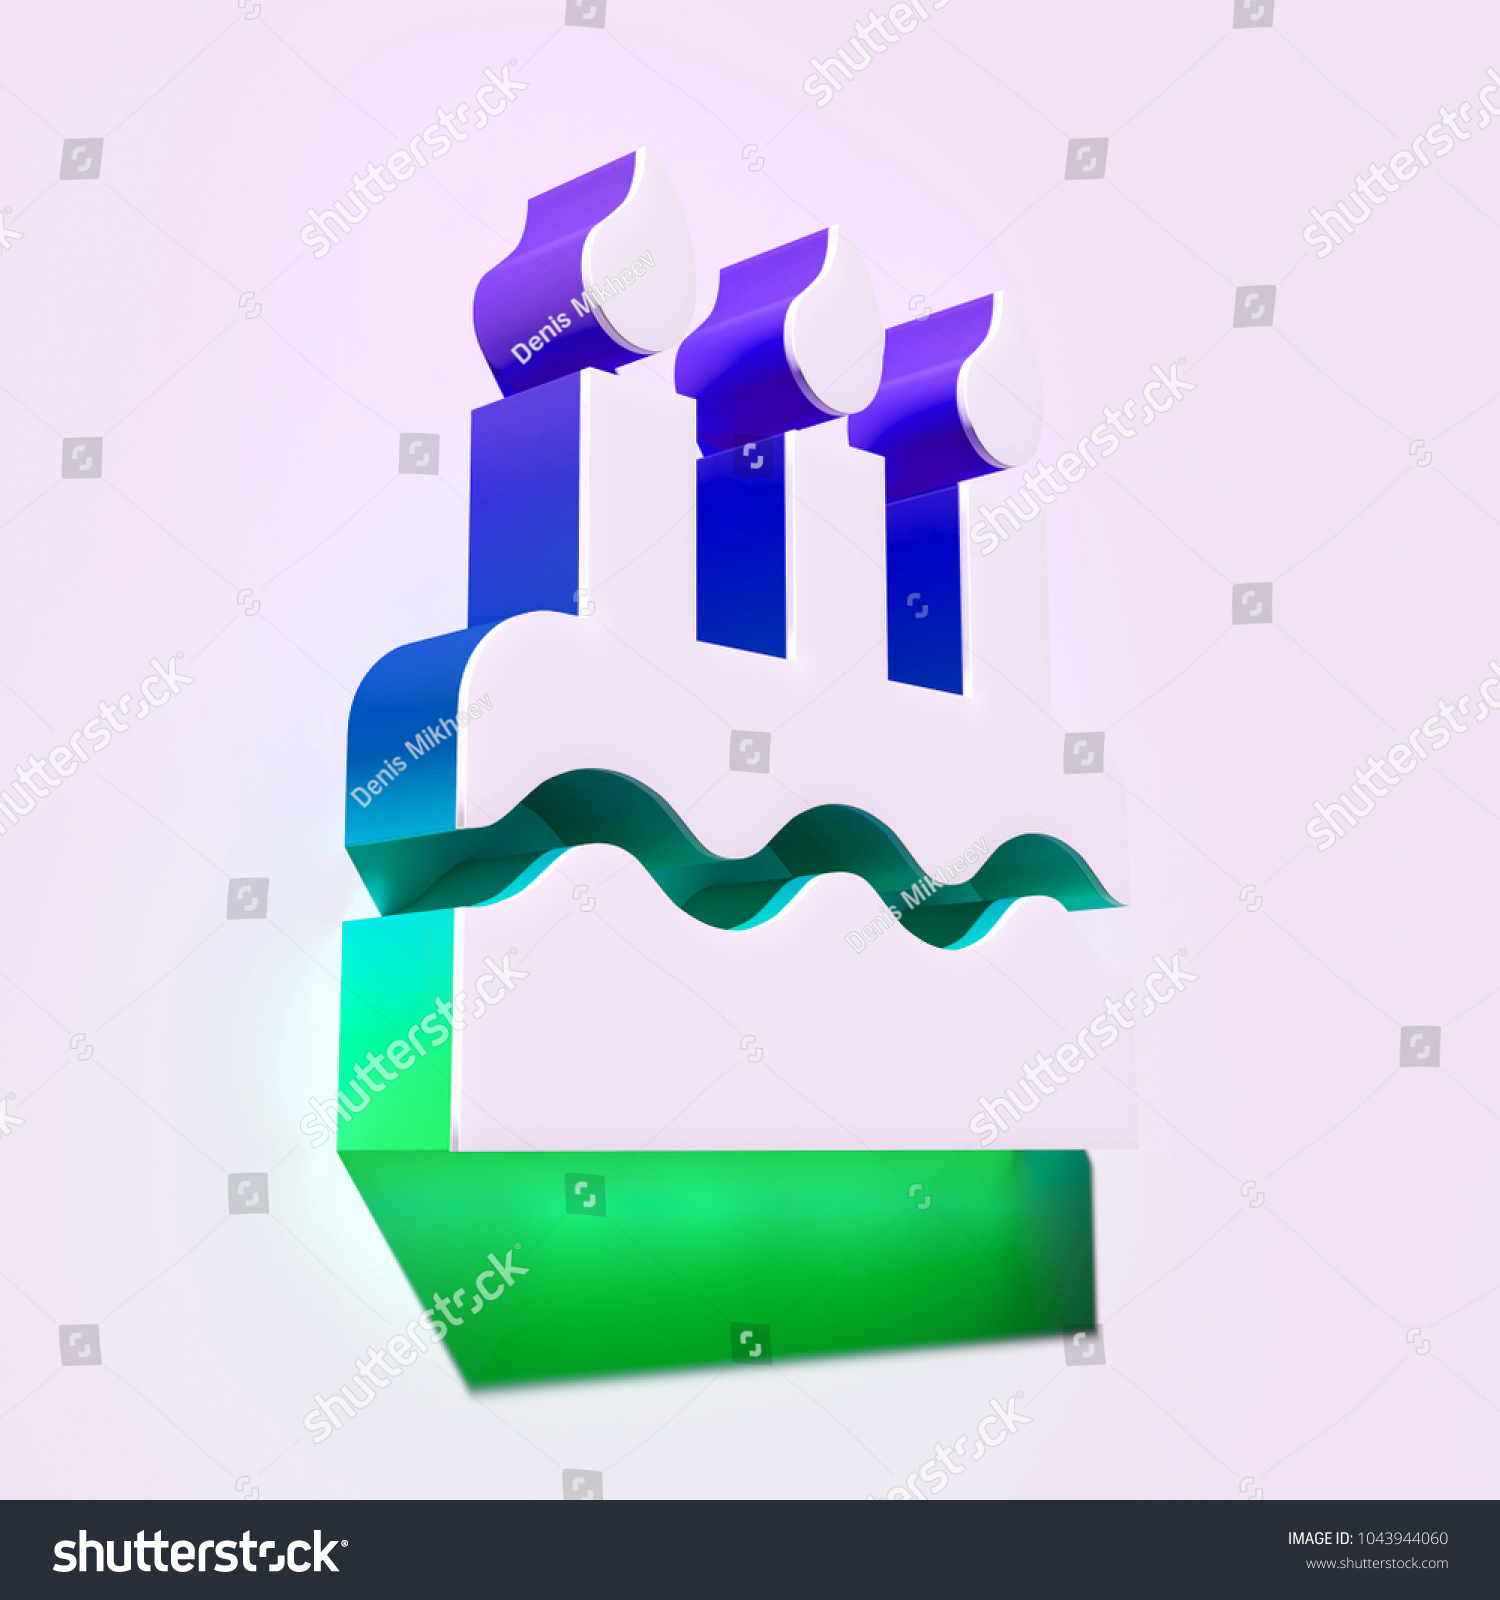 Royalty Free Stock Illustration Of White Birthday Cake Icon 3 D